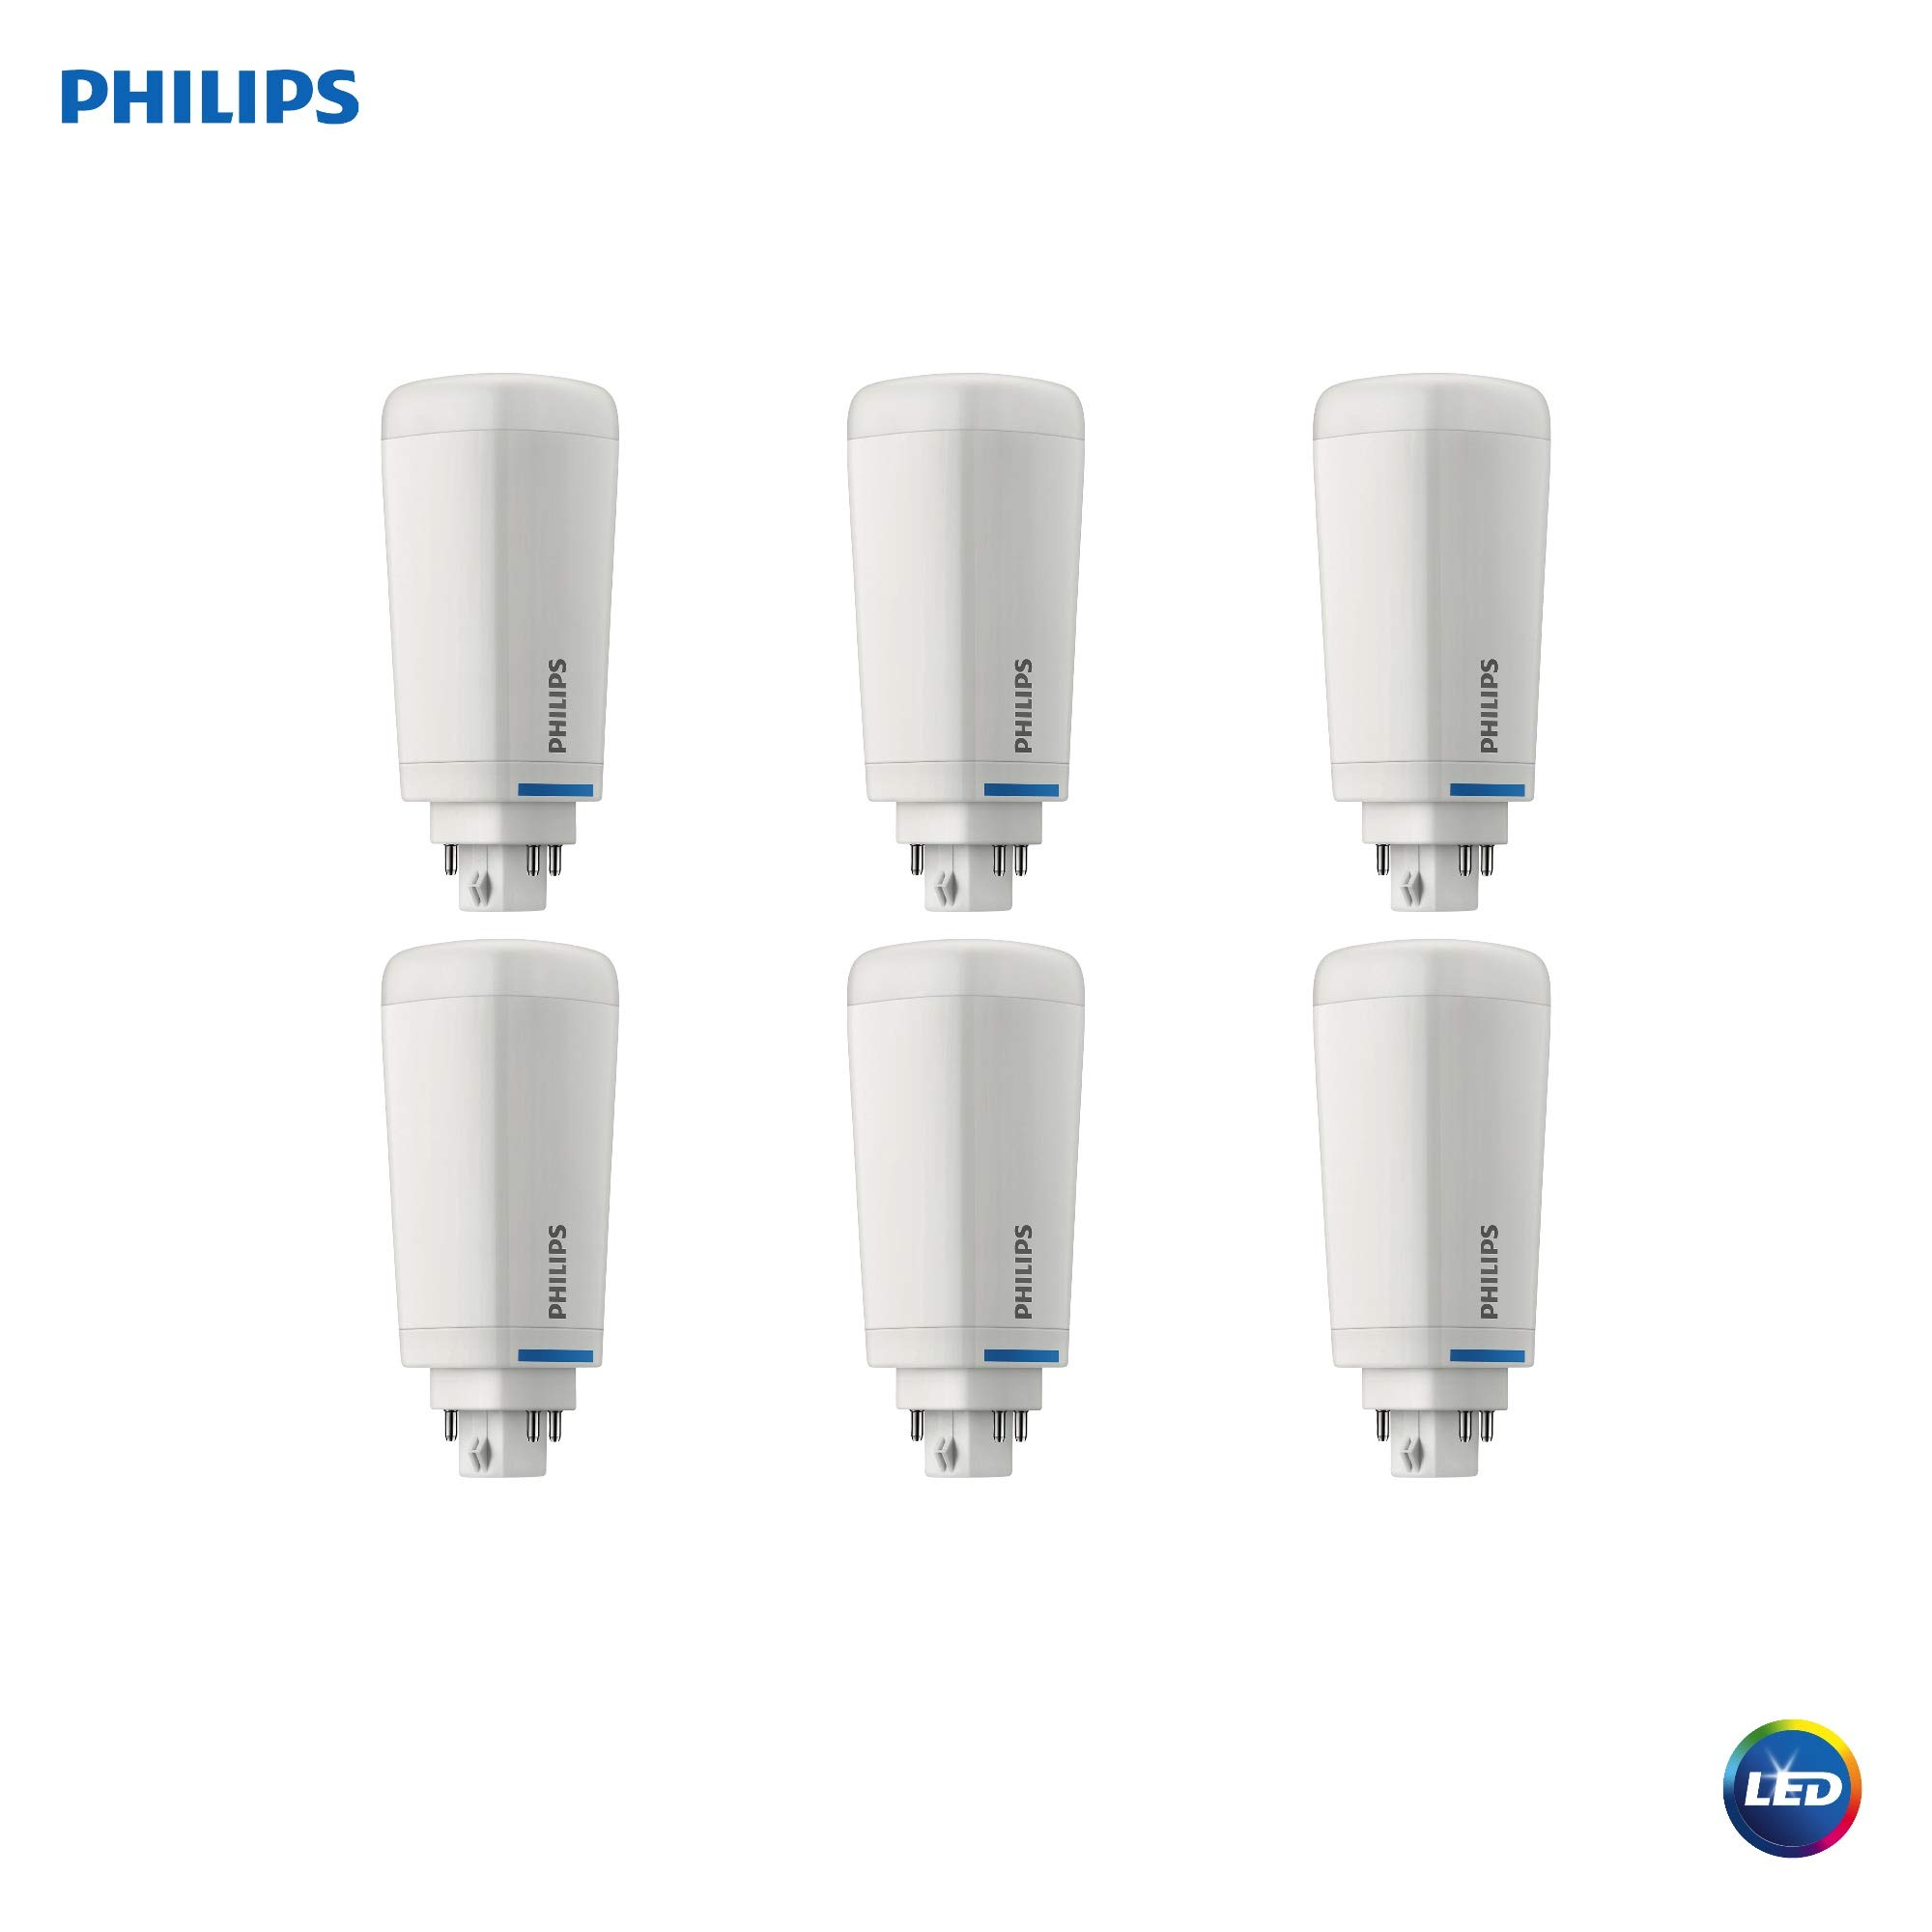 Philips LED 535385 Dimmable Energy Saver PL-C/T Light Bulb: 1200-Lumen, 3500-Kelvin, 10.5 (26-Watt Equivalent), 4-Pin G24Q/GX24Q Base, Frosted, Neutral White, 6-Pack, Piece